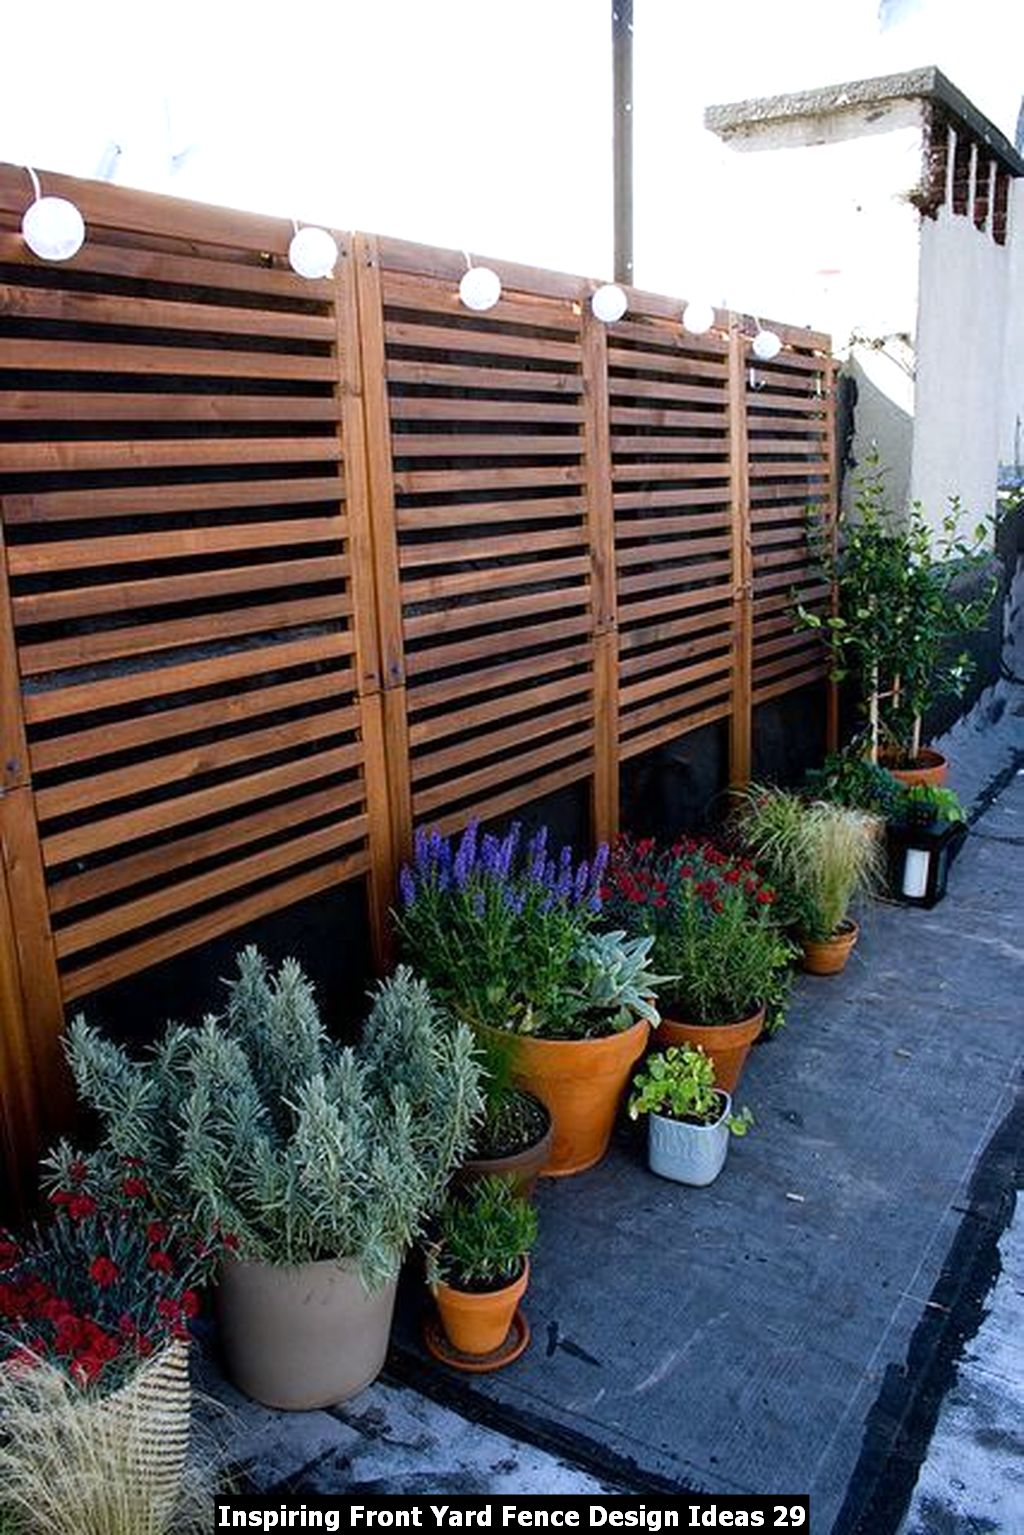 Inspiring Front Yard Fence Design Ideas 29